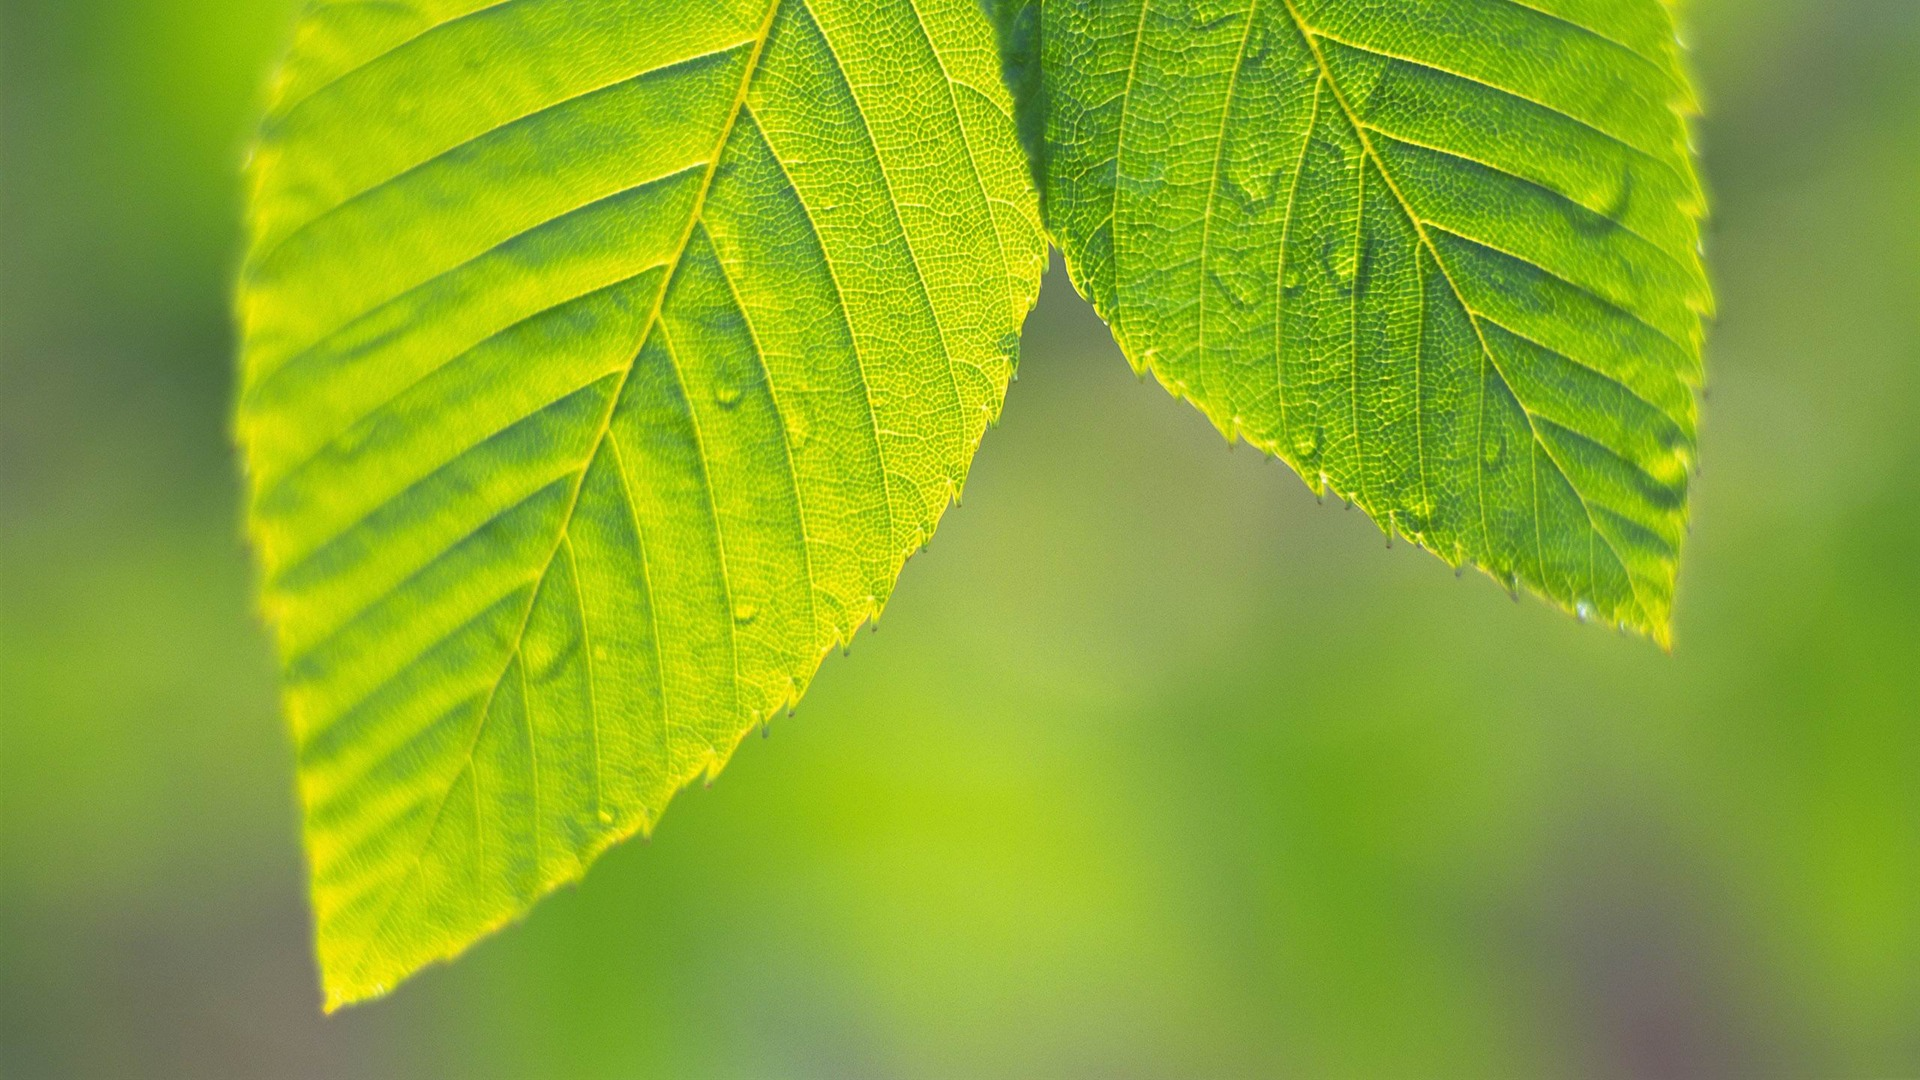 leaves natural widescreen nature leaf hojas imagenes hd